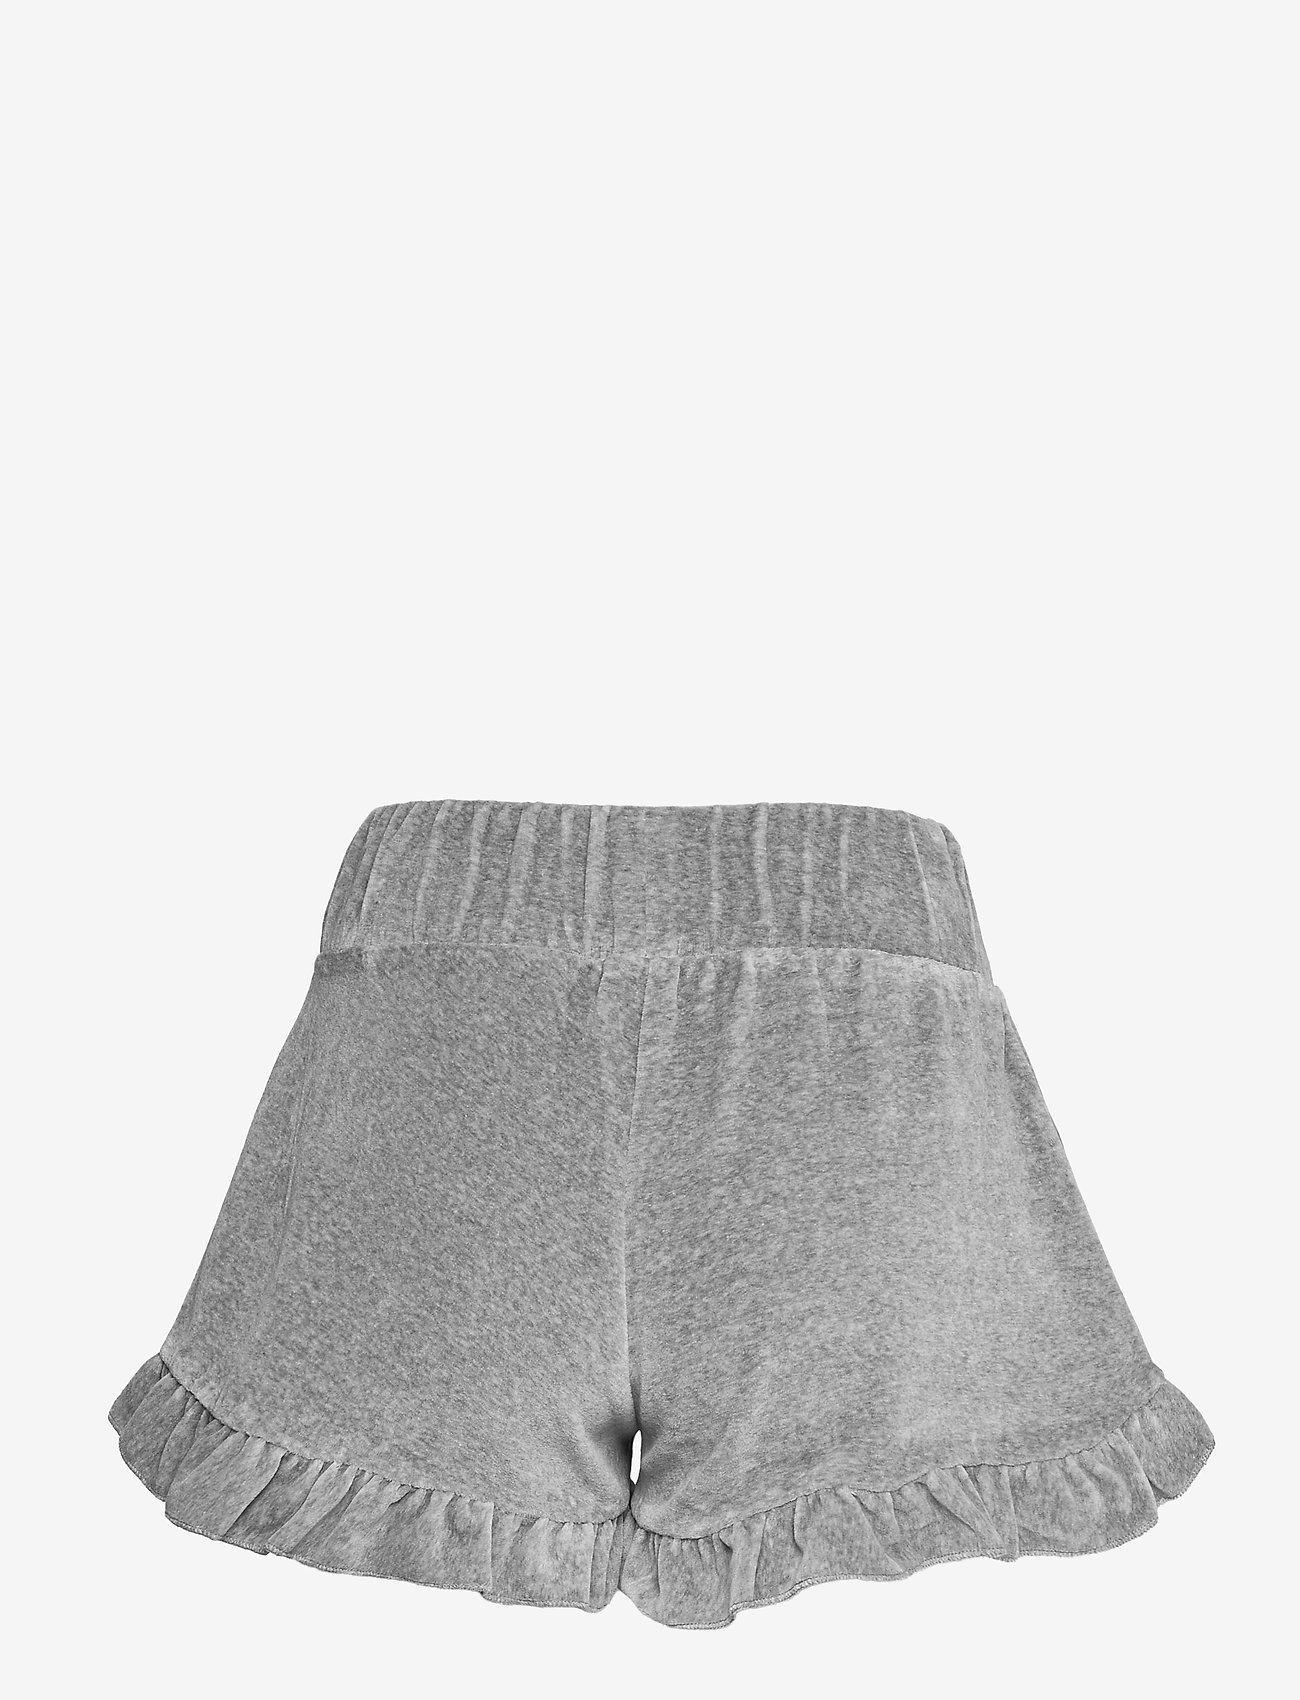 ella&il - Hay velour shorts - shorts casual - grey - 1